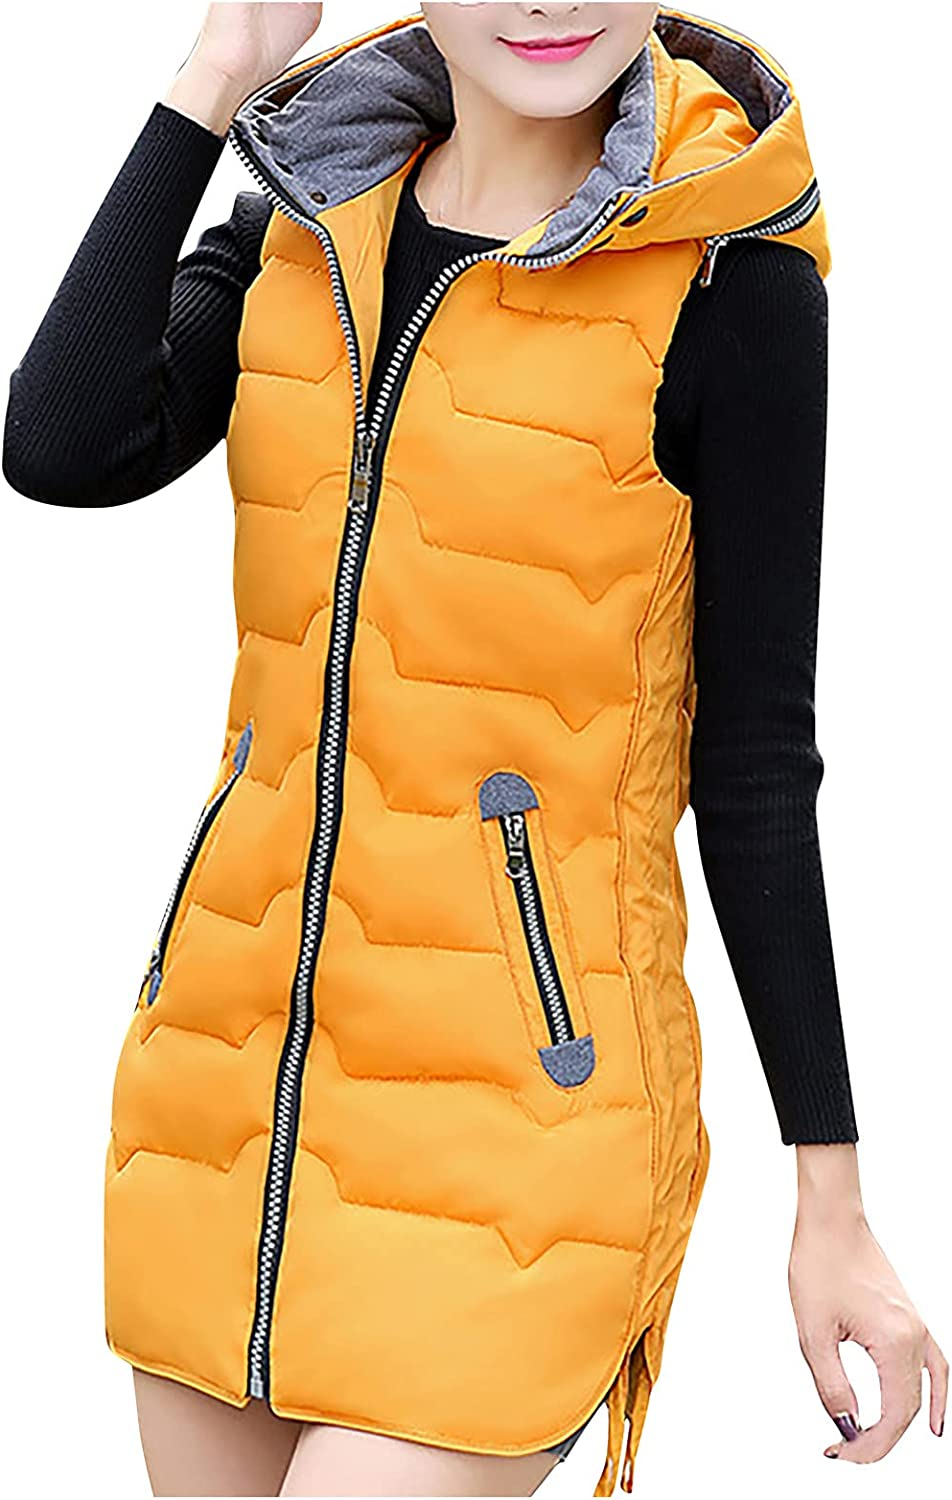 LEXUPA Cardigans Max 54% OFF Sweaters Pullovers Women Al sold out. O Hoodies,Fashion